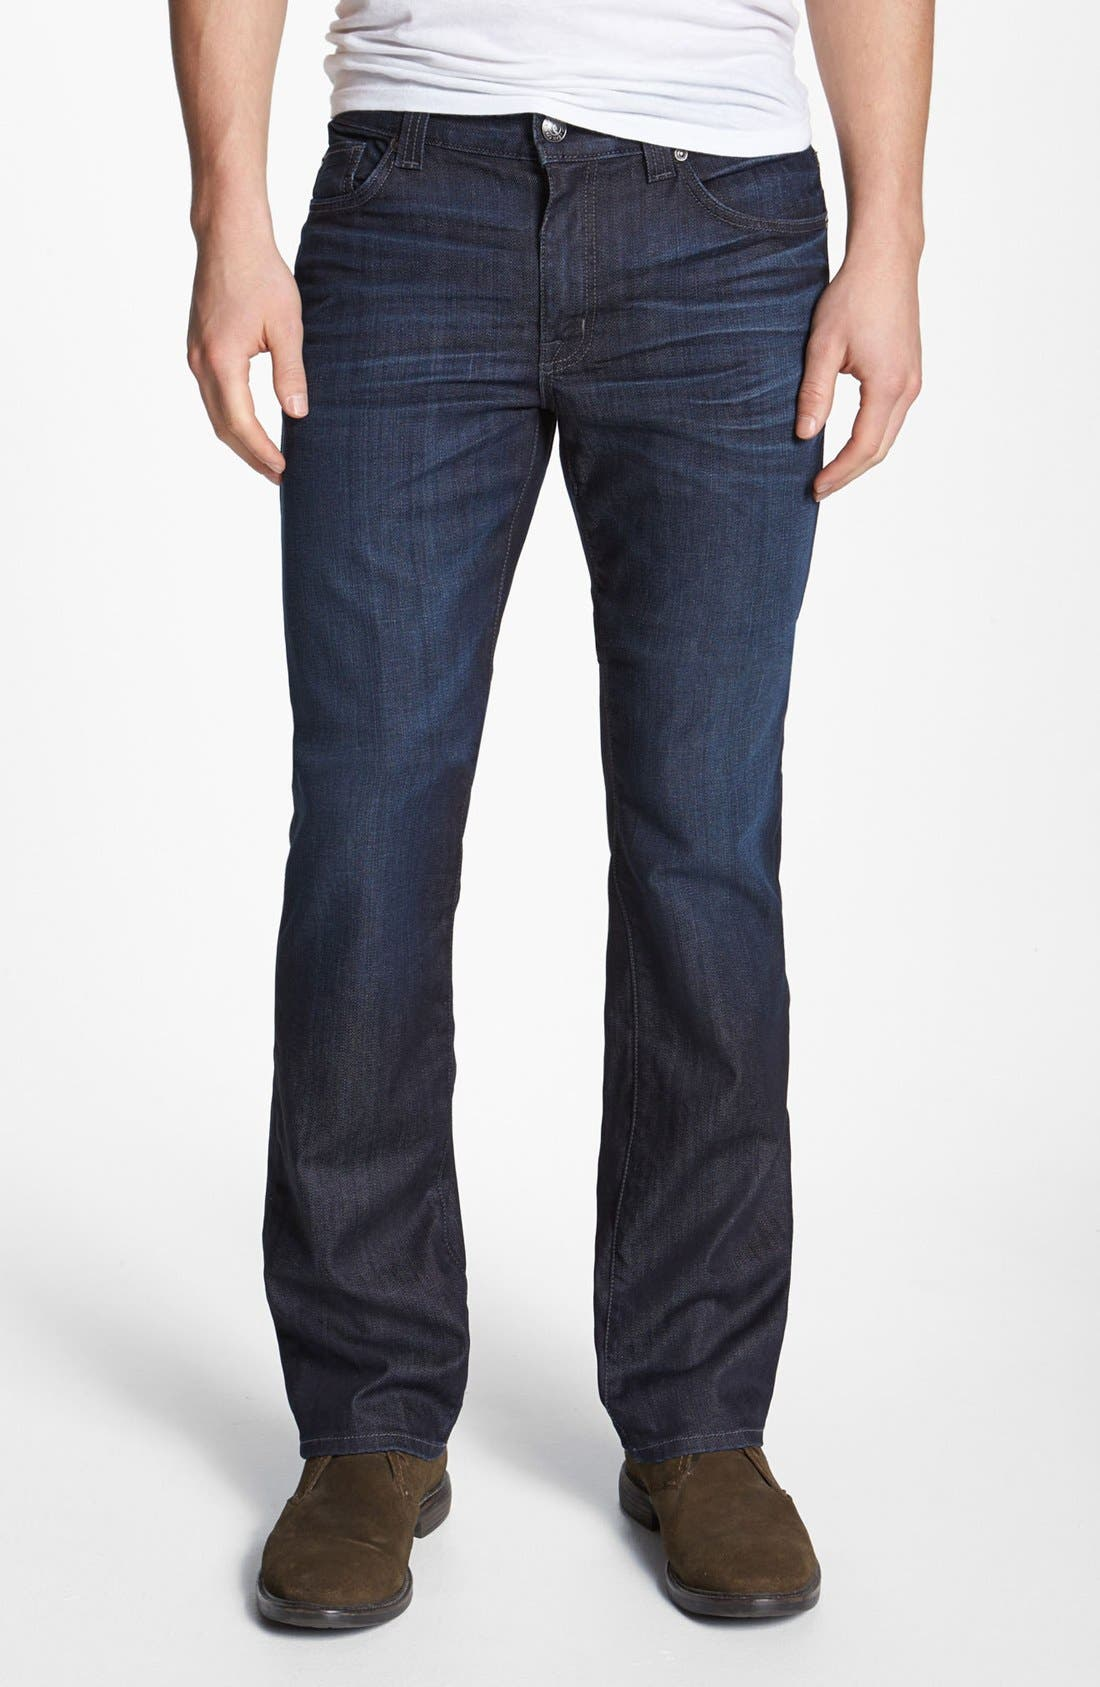 Main Image - Fidelity Denim 'Impala' Straight Leg Jeans (Lennon Dark Wash)